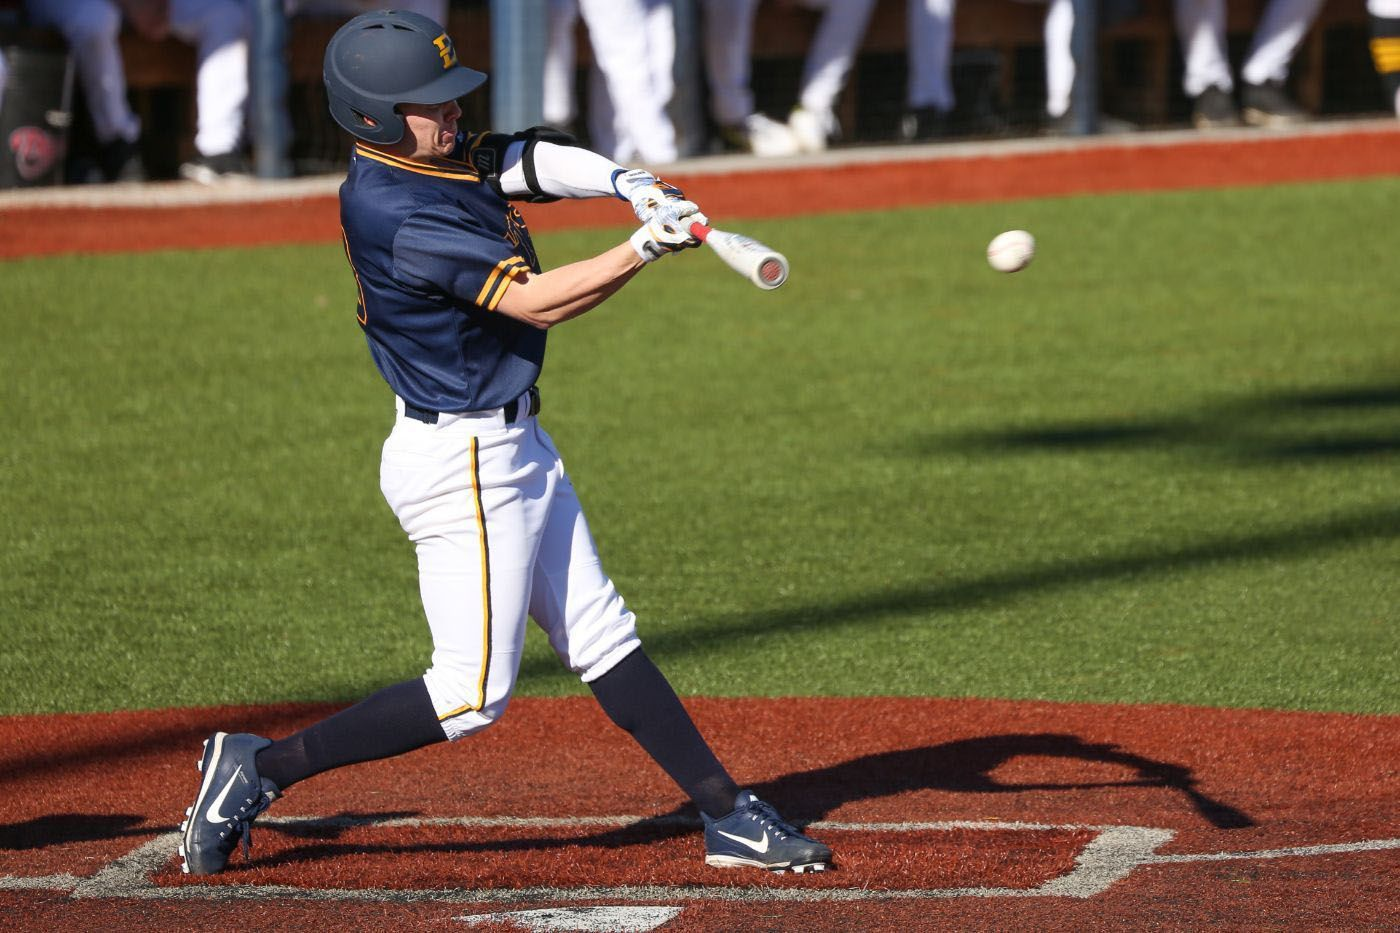 ETSU Uses Long Ball to Defeat App State, 10-5